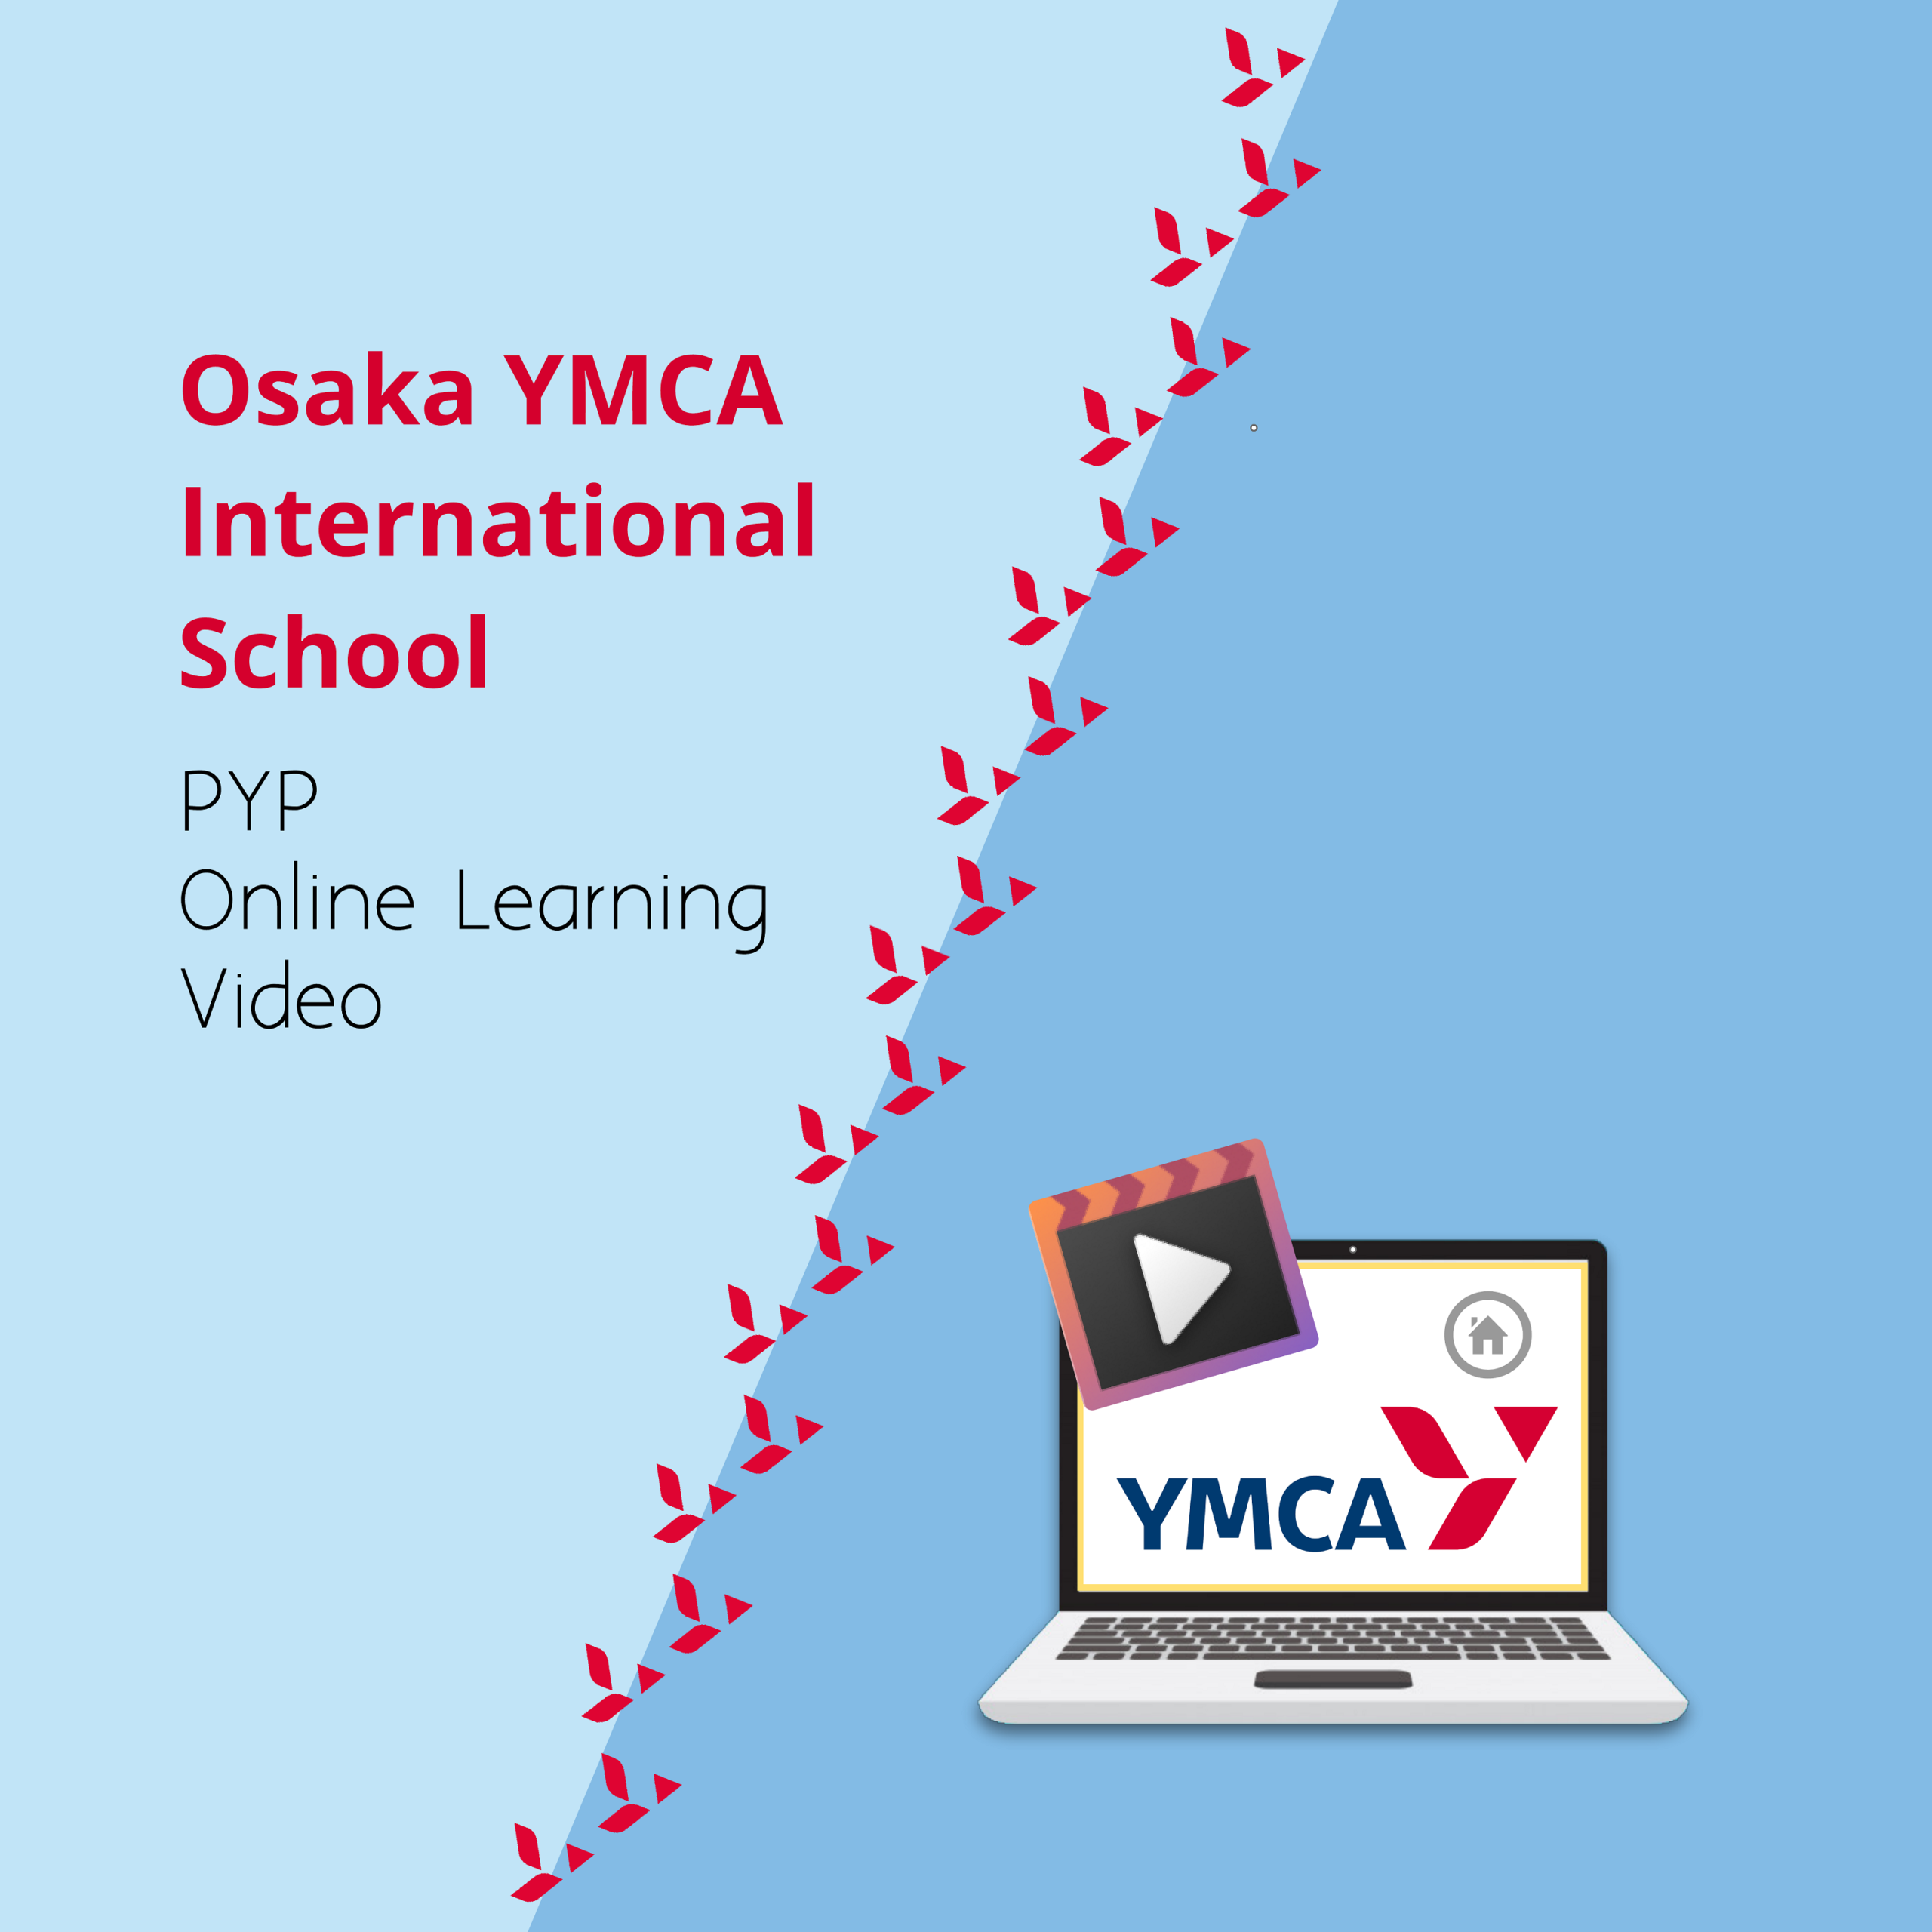 PYP Online Learning Video